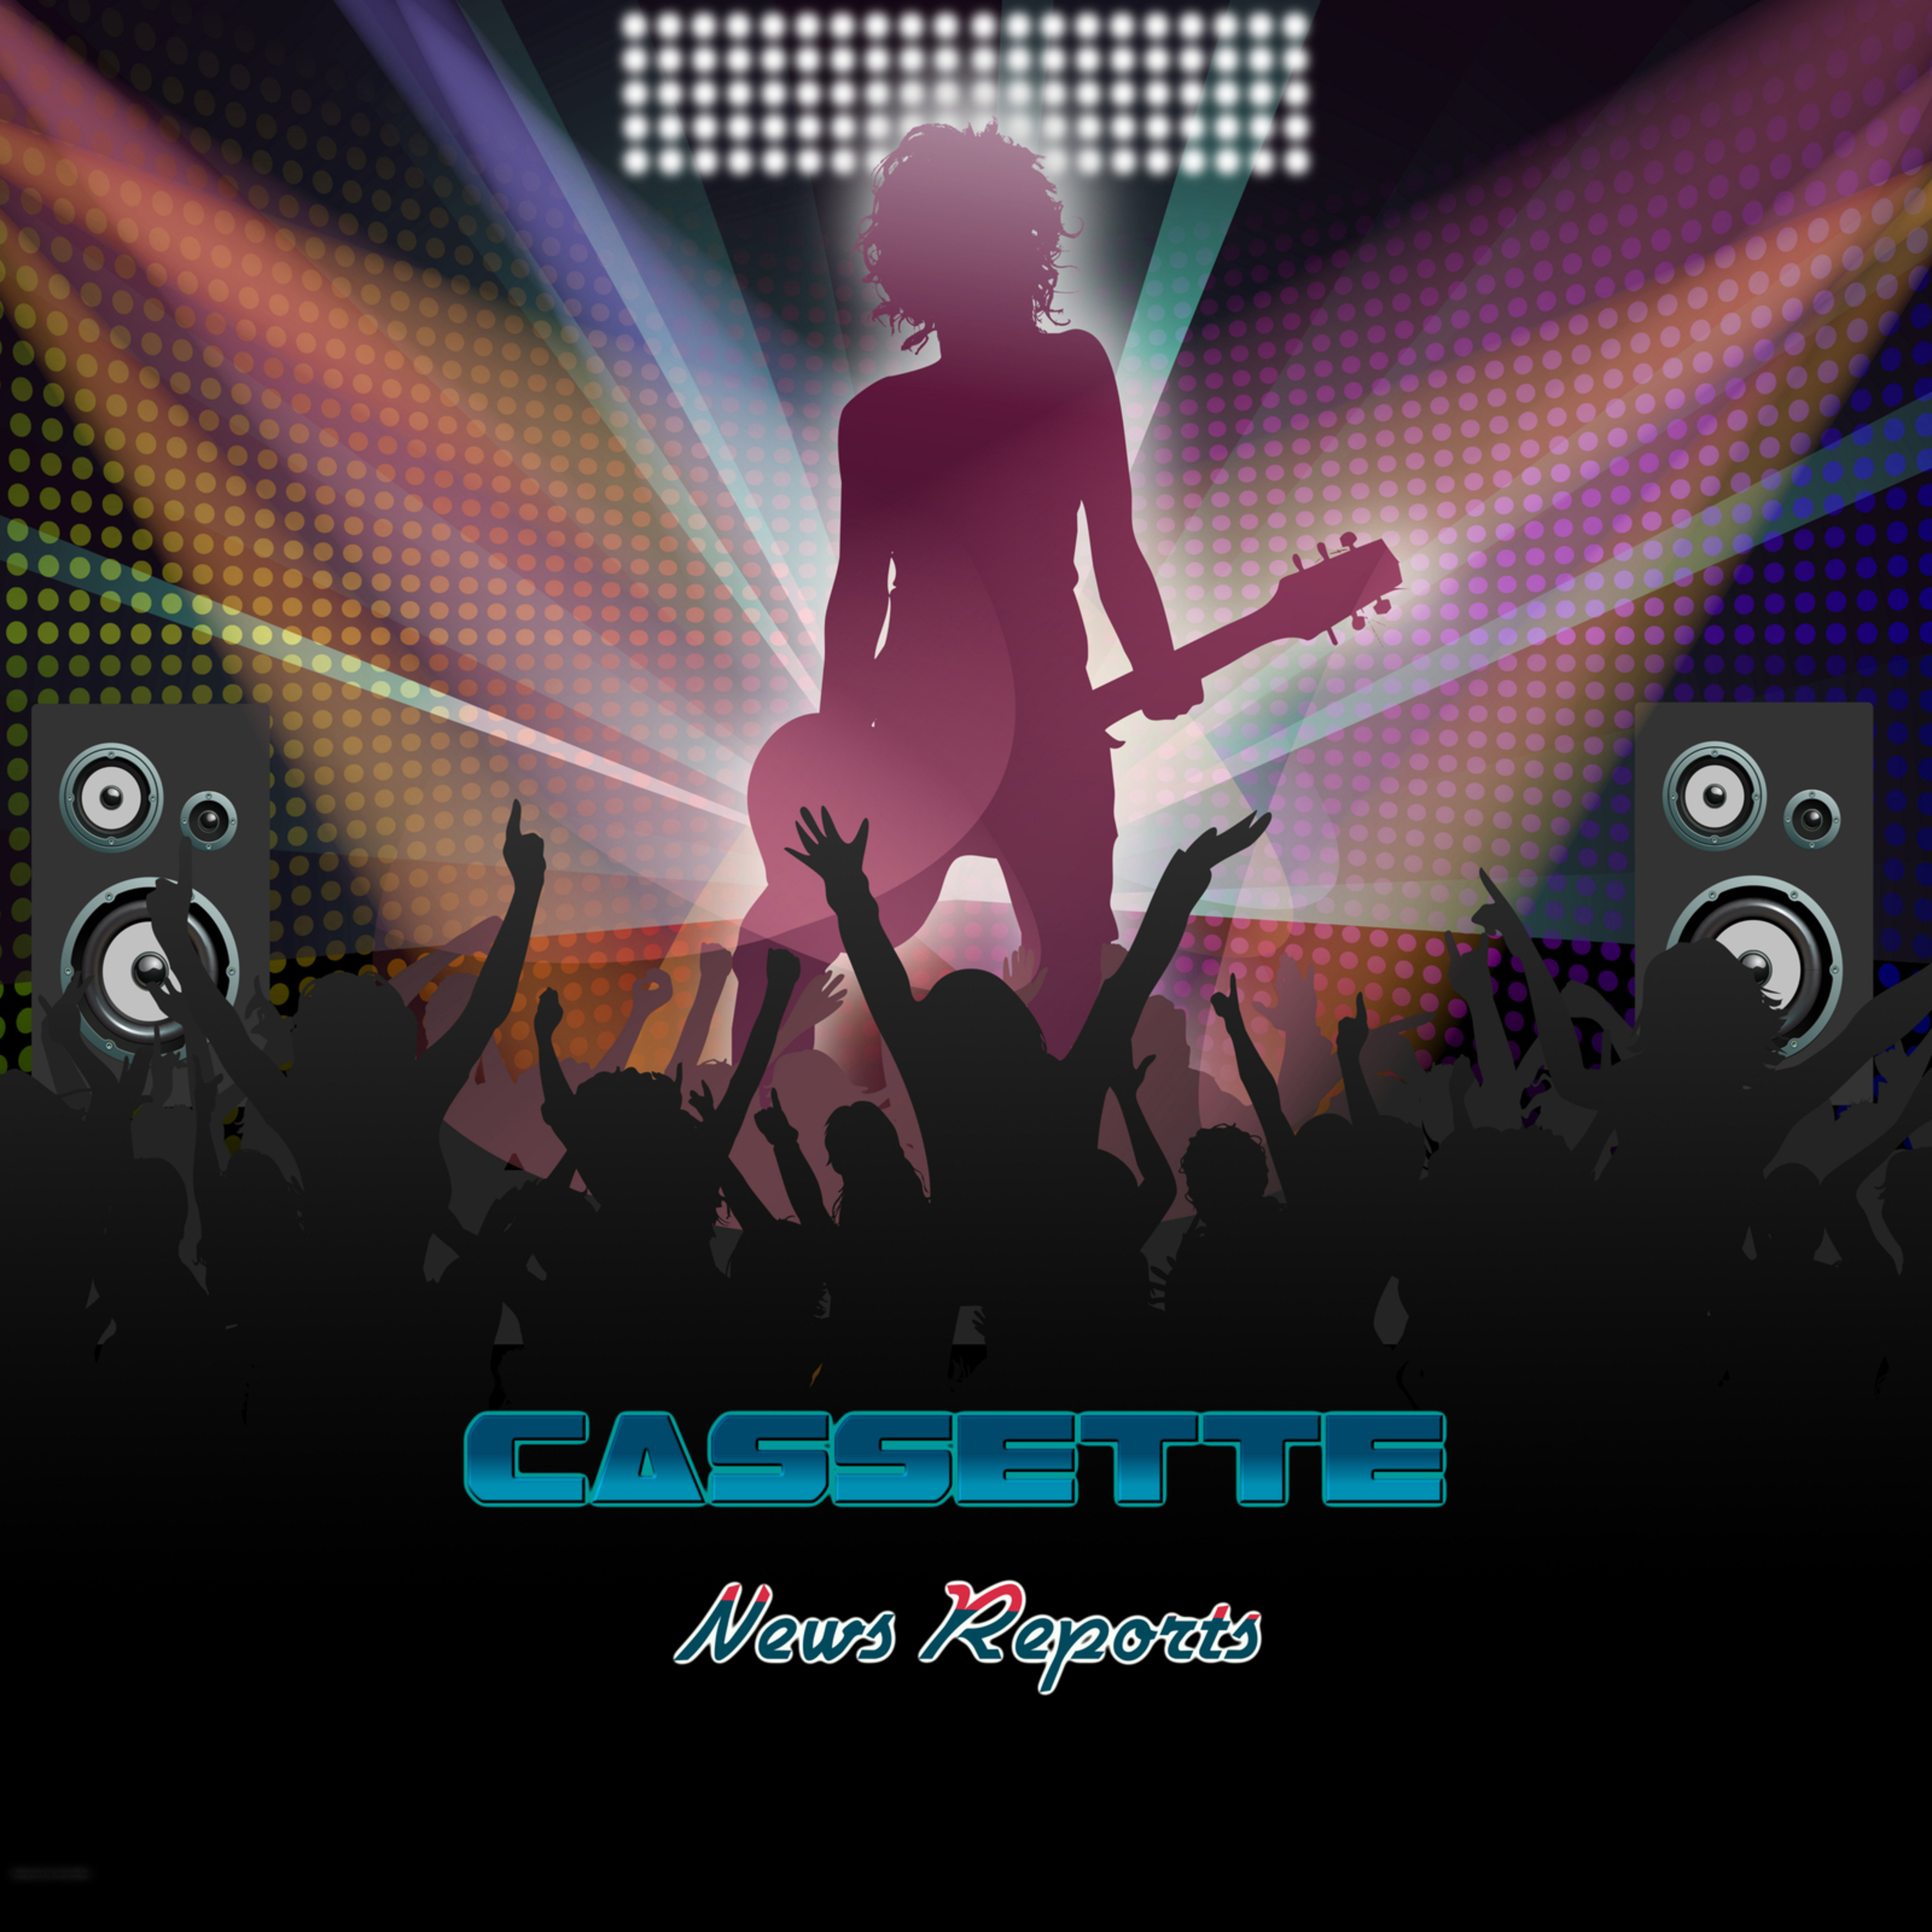 Mindful Alternative and Rock Mixes to Raise Awareness: CASSETTE Releases Passionate New Single